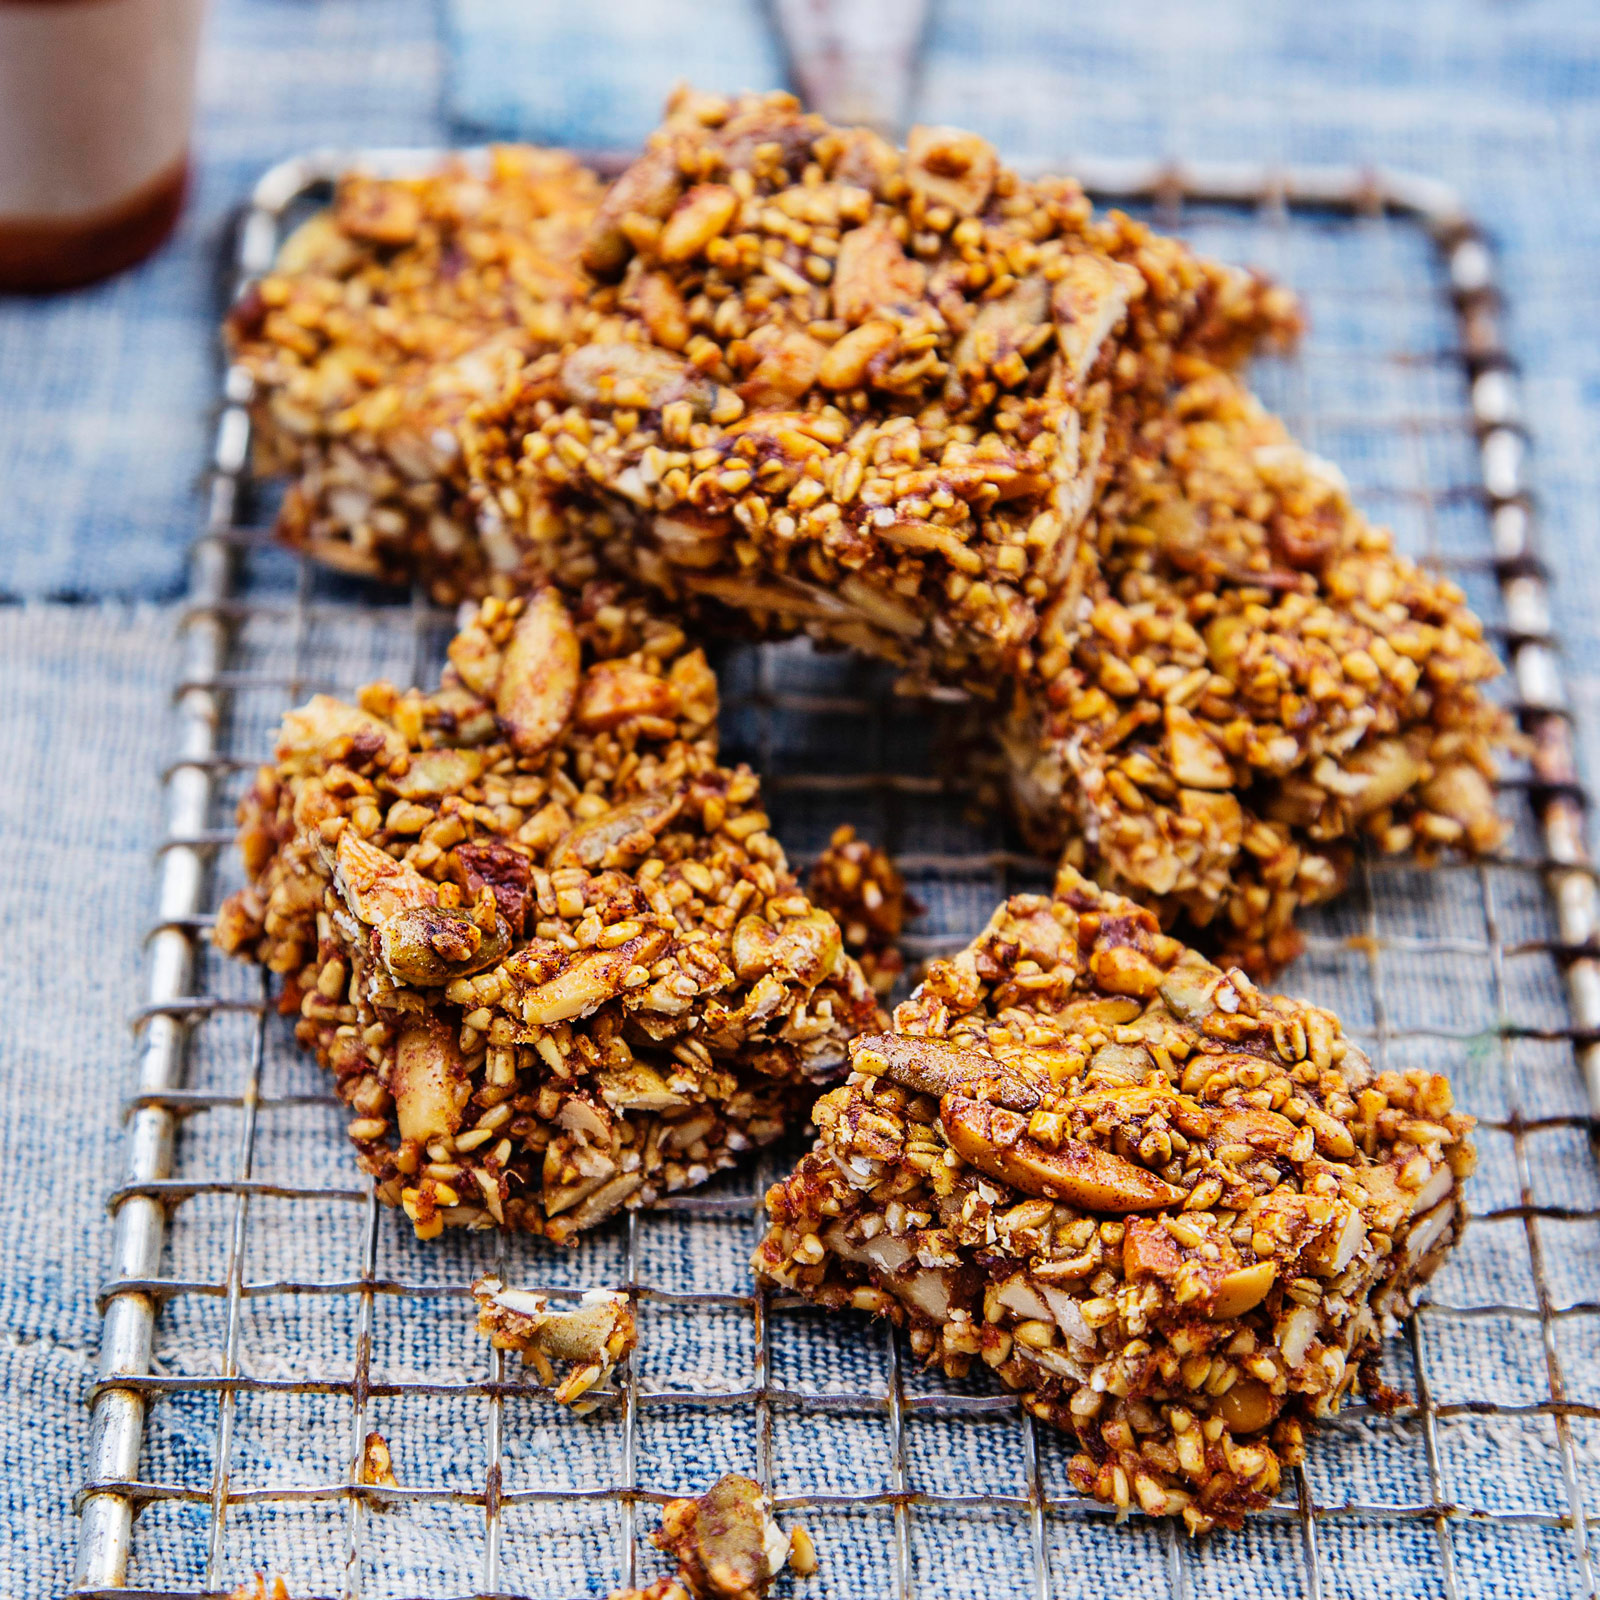 Date-and-Nut Energy Bars